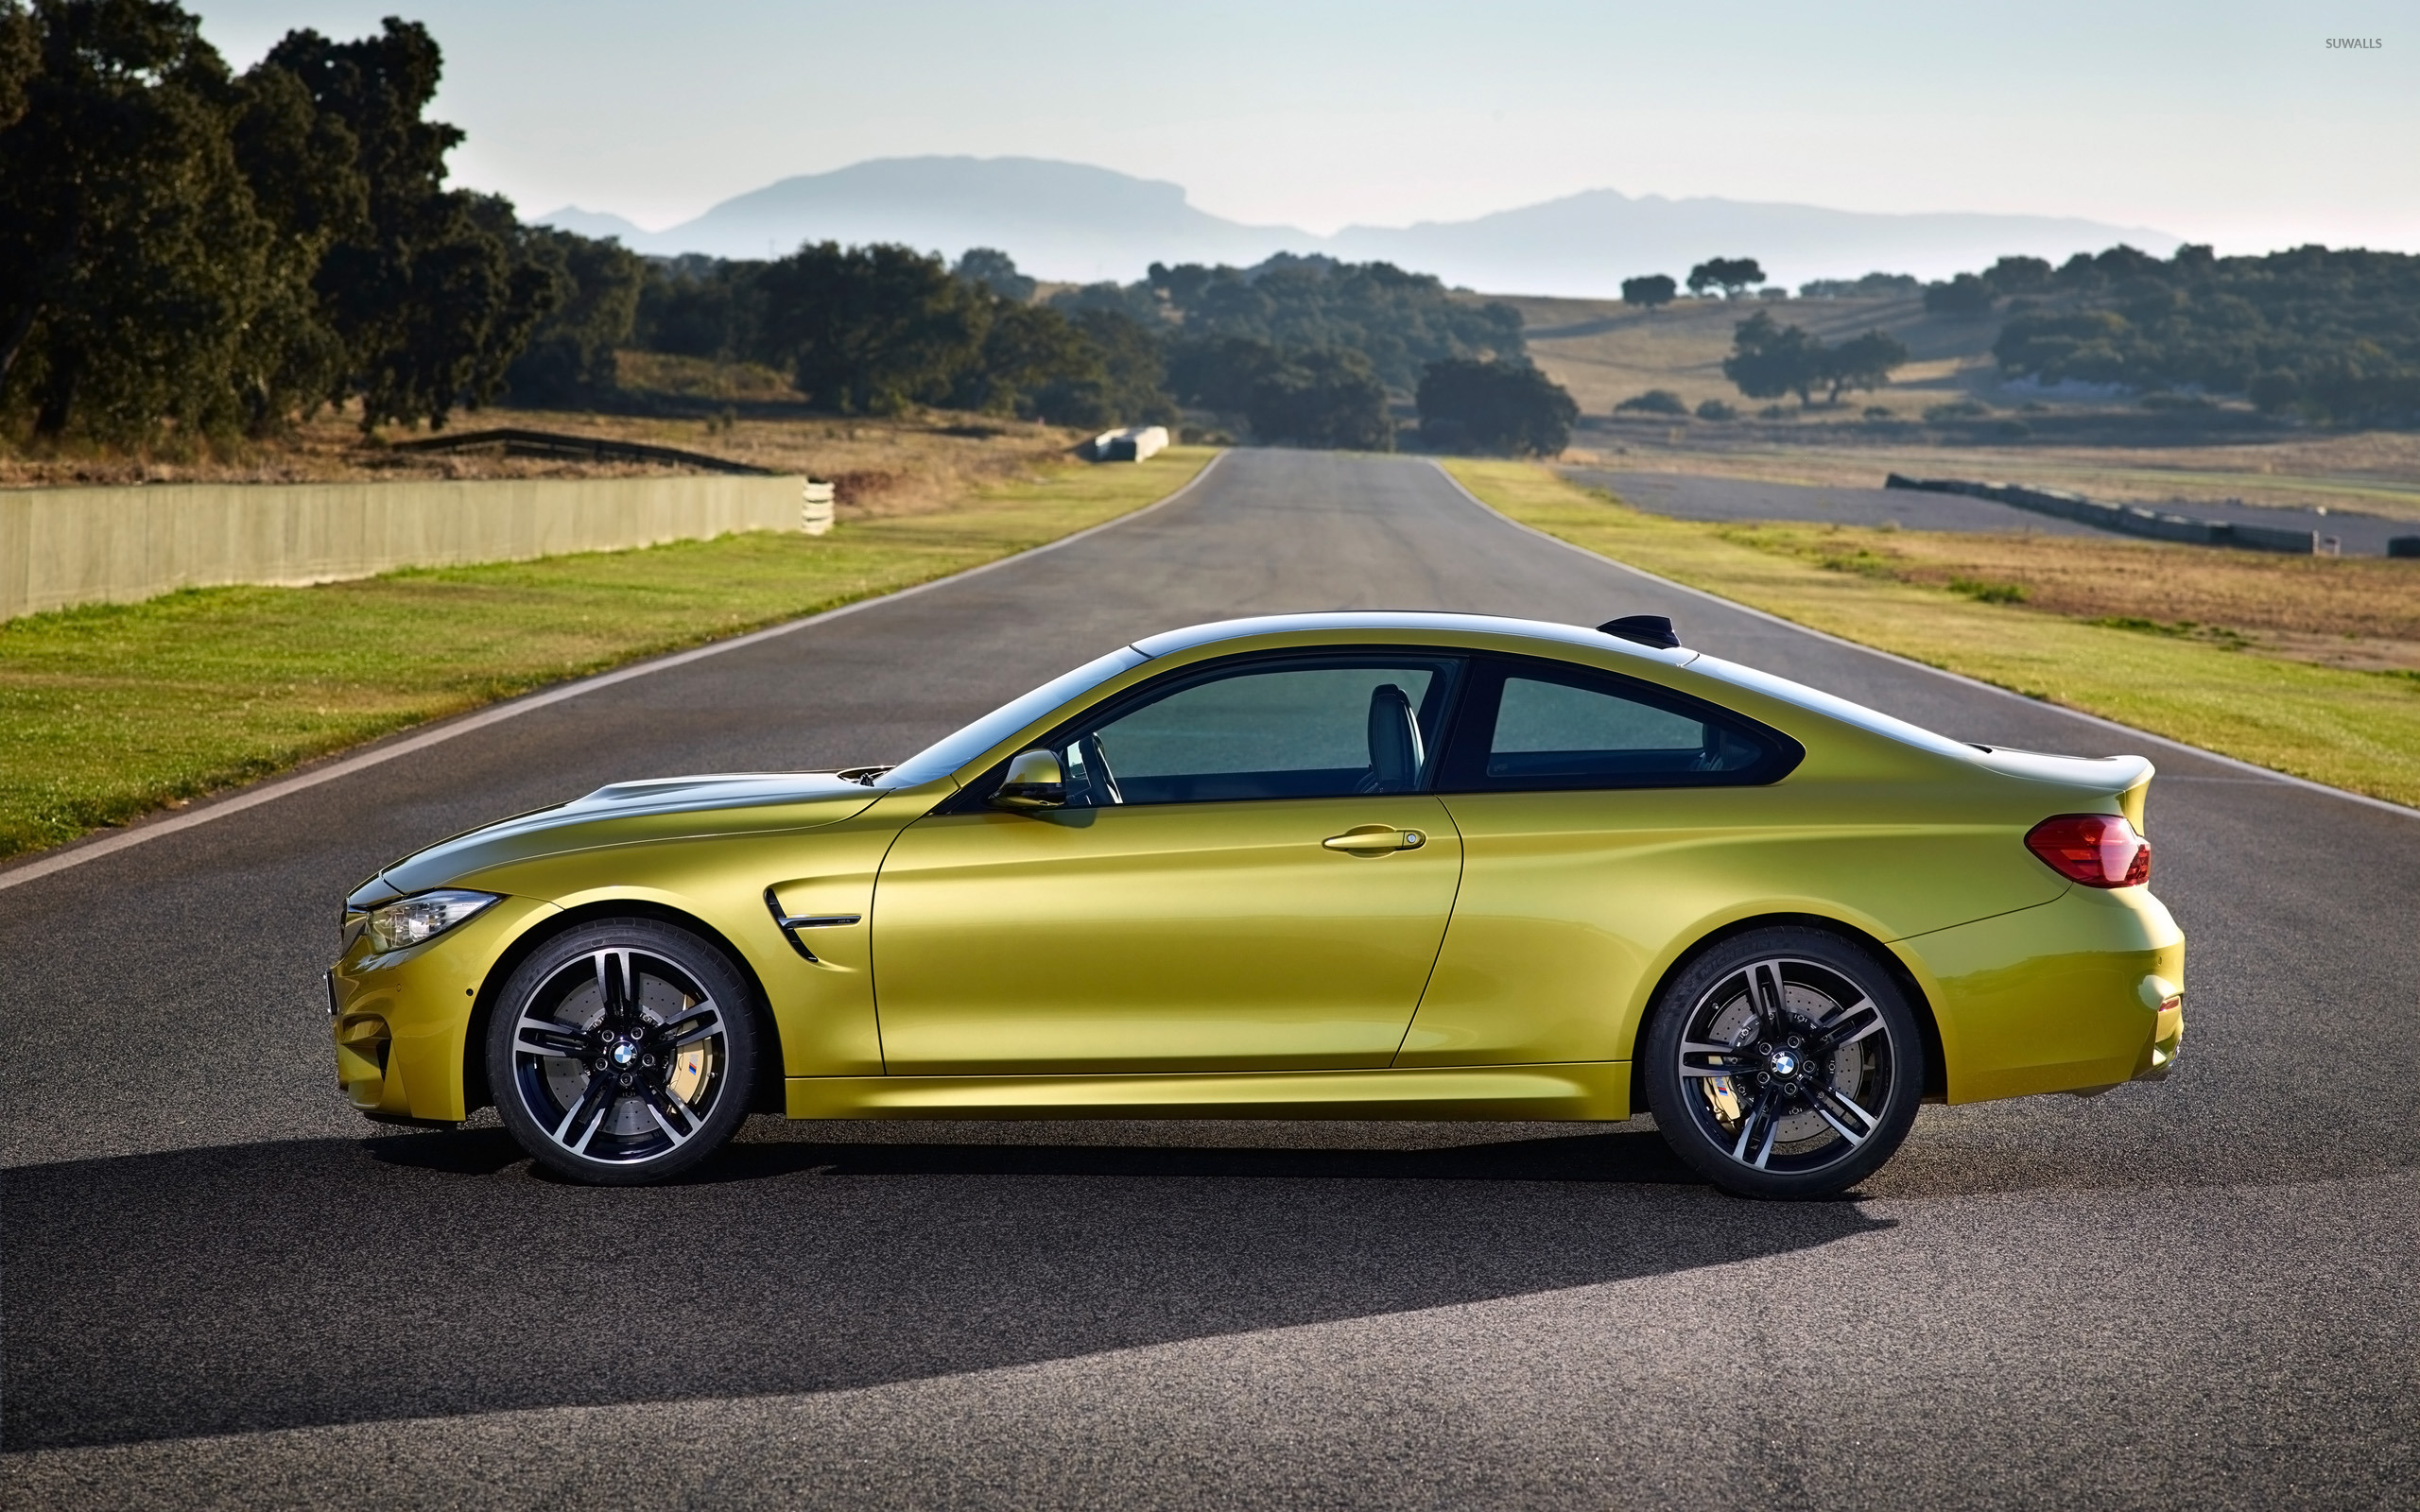 BMW M Coupe Wallpaper Car Wallpapers - 2014 bmw m4 msrp